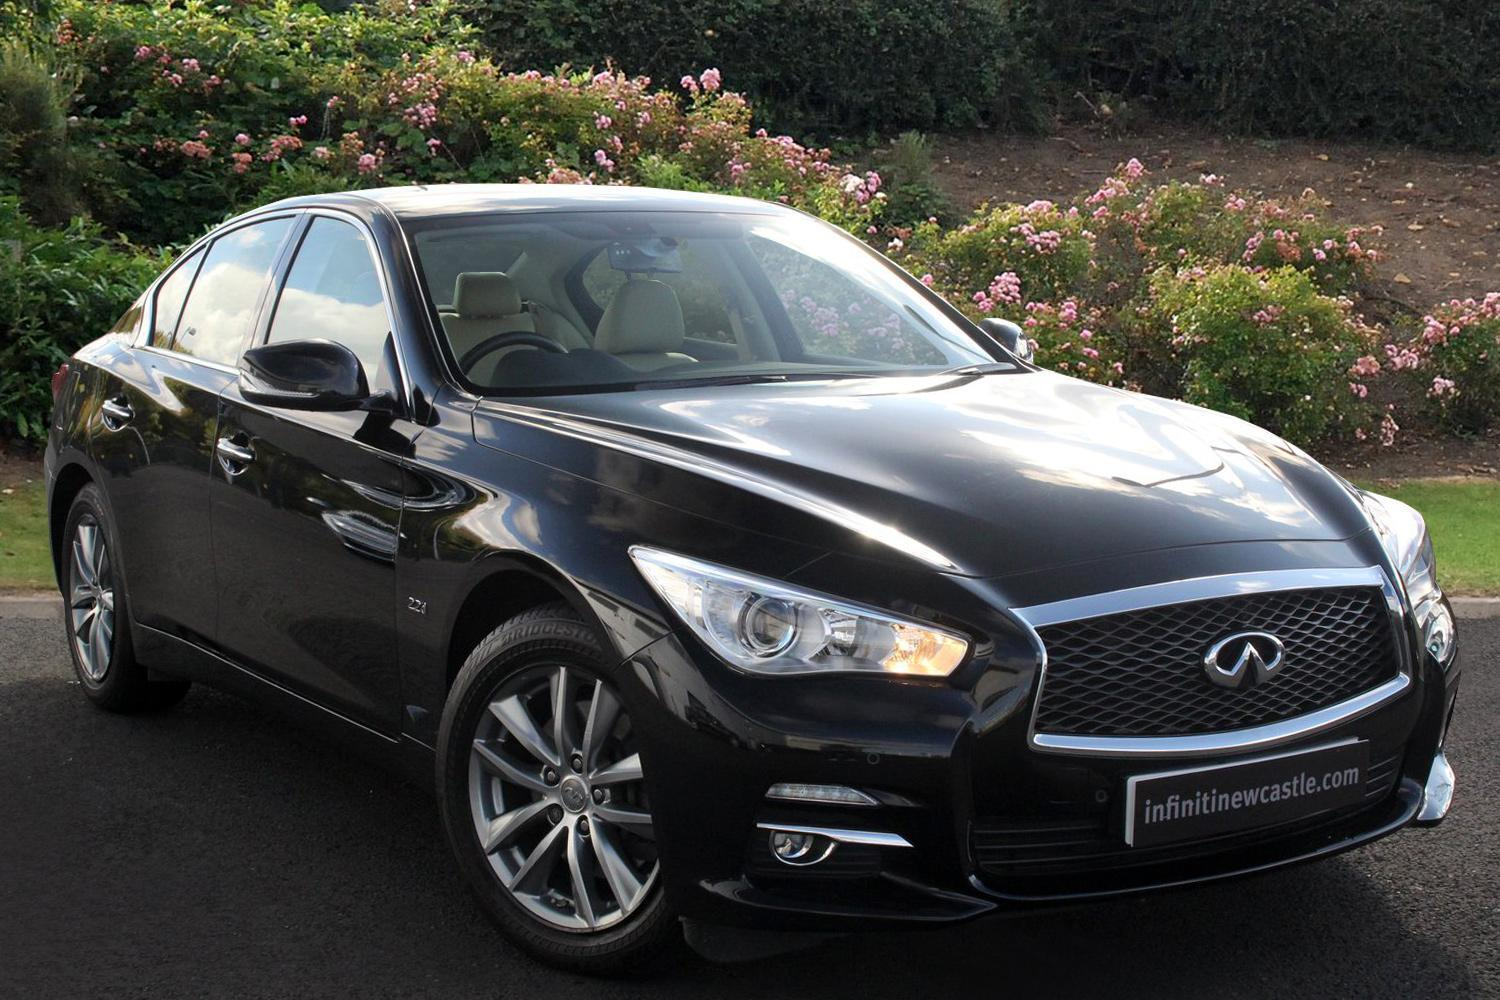 used infiniti q50 2 2d executive 4dr diesel saloon for sale newcastle infiniti. Black Bedroom Furniture Sets. Home Design Ideas